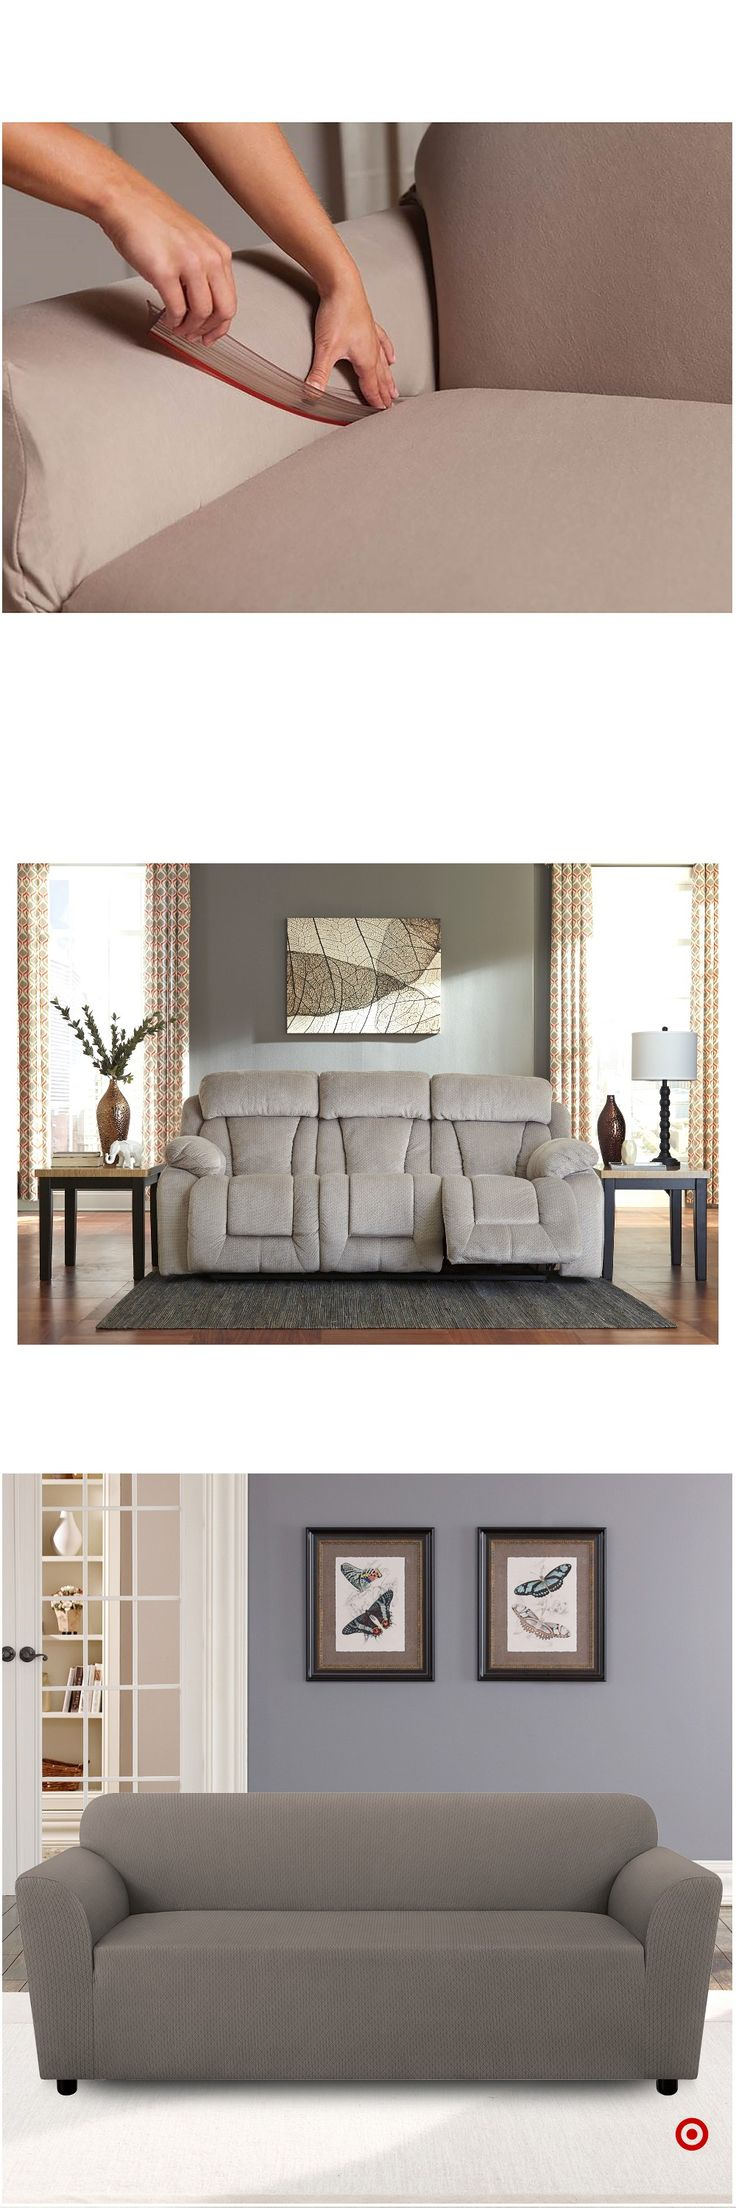 Shop Target for sofa slipcover you will love at great low prices. Free shipping on orders of $35+ or free same-day pick-up in store.